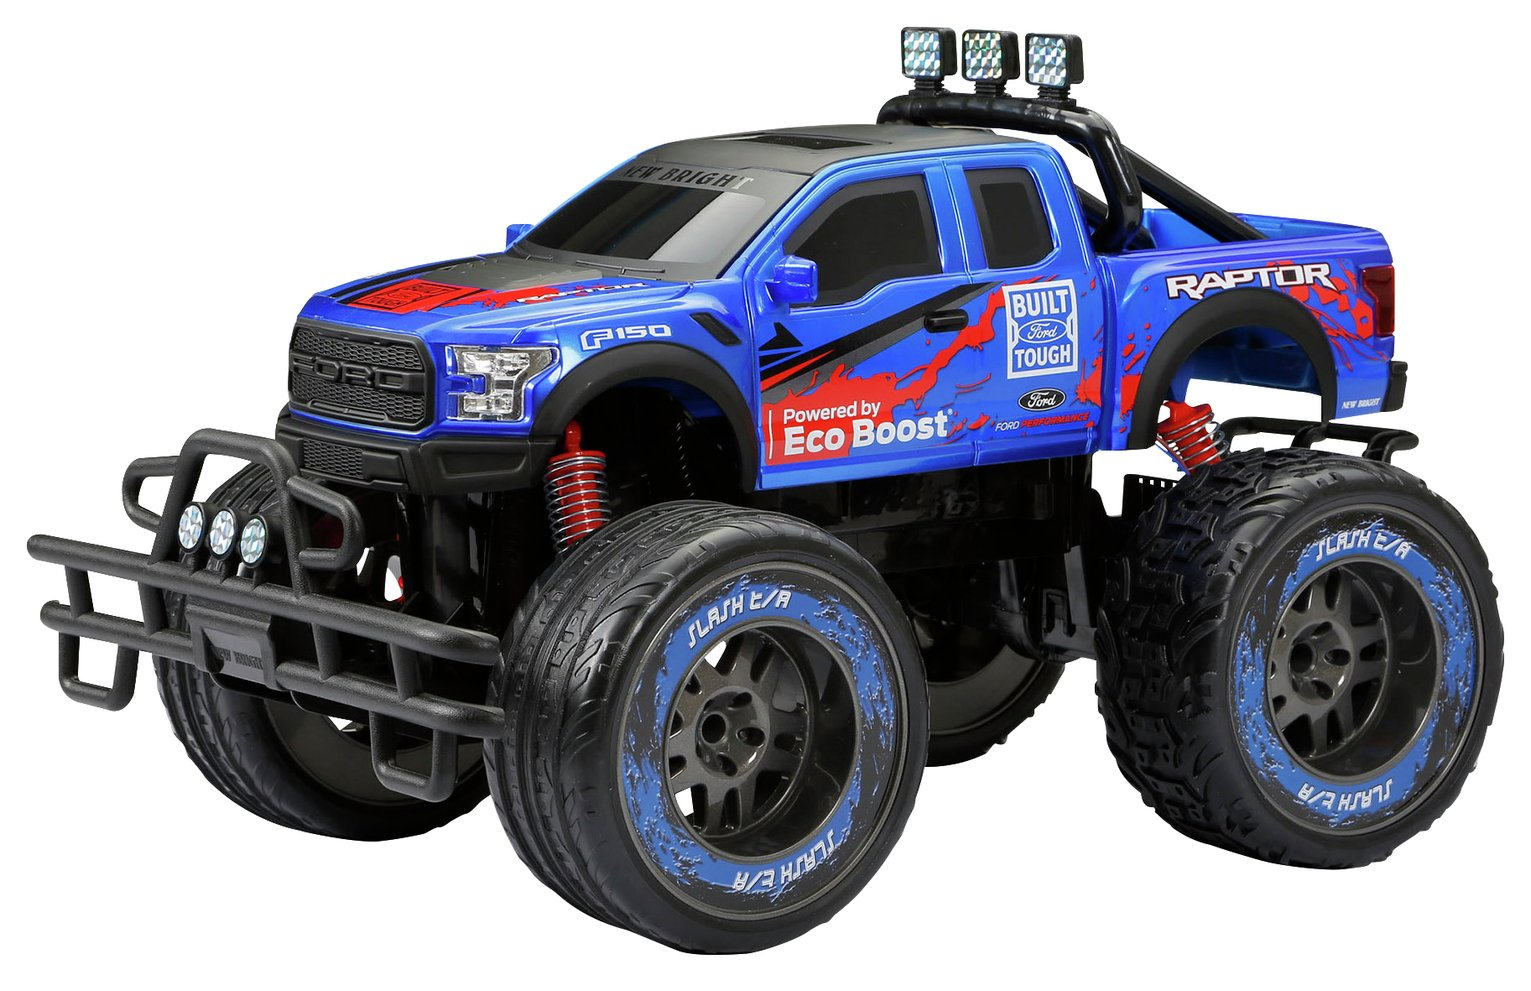 New Bright Radio Control Raptor 1:10 Monster Truck